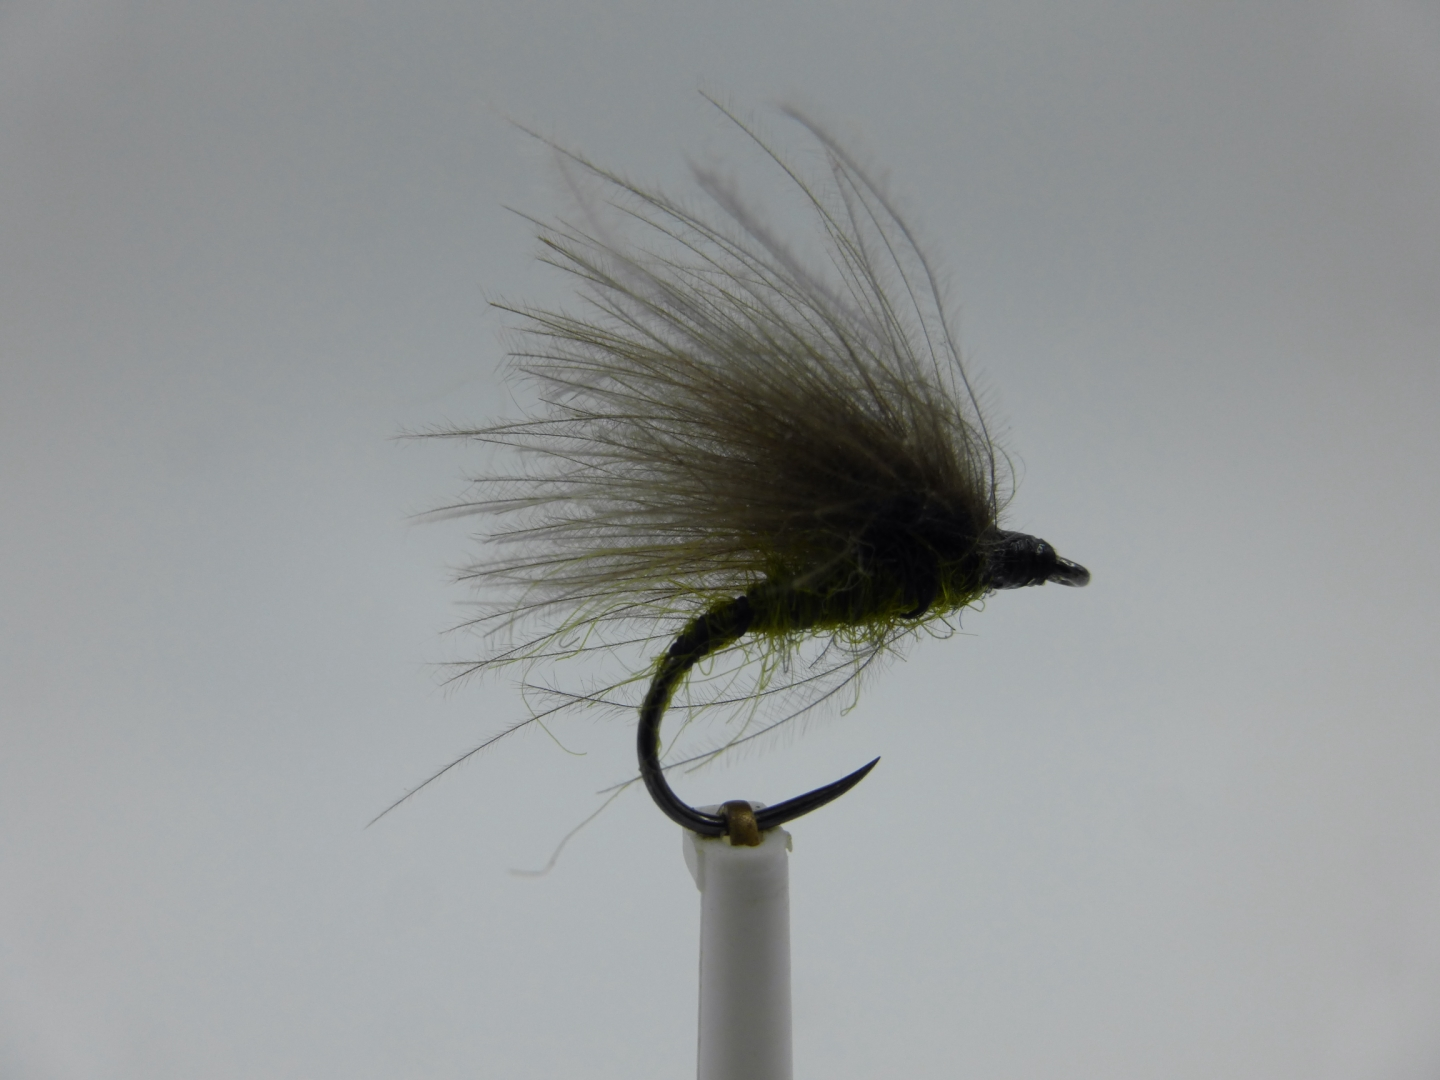 3 X CDC OLIVE HIGH RIDER SEDGE DRY TROUT FLIES sizes 10,12 available